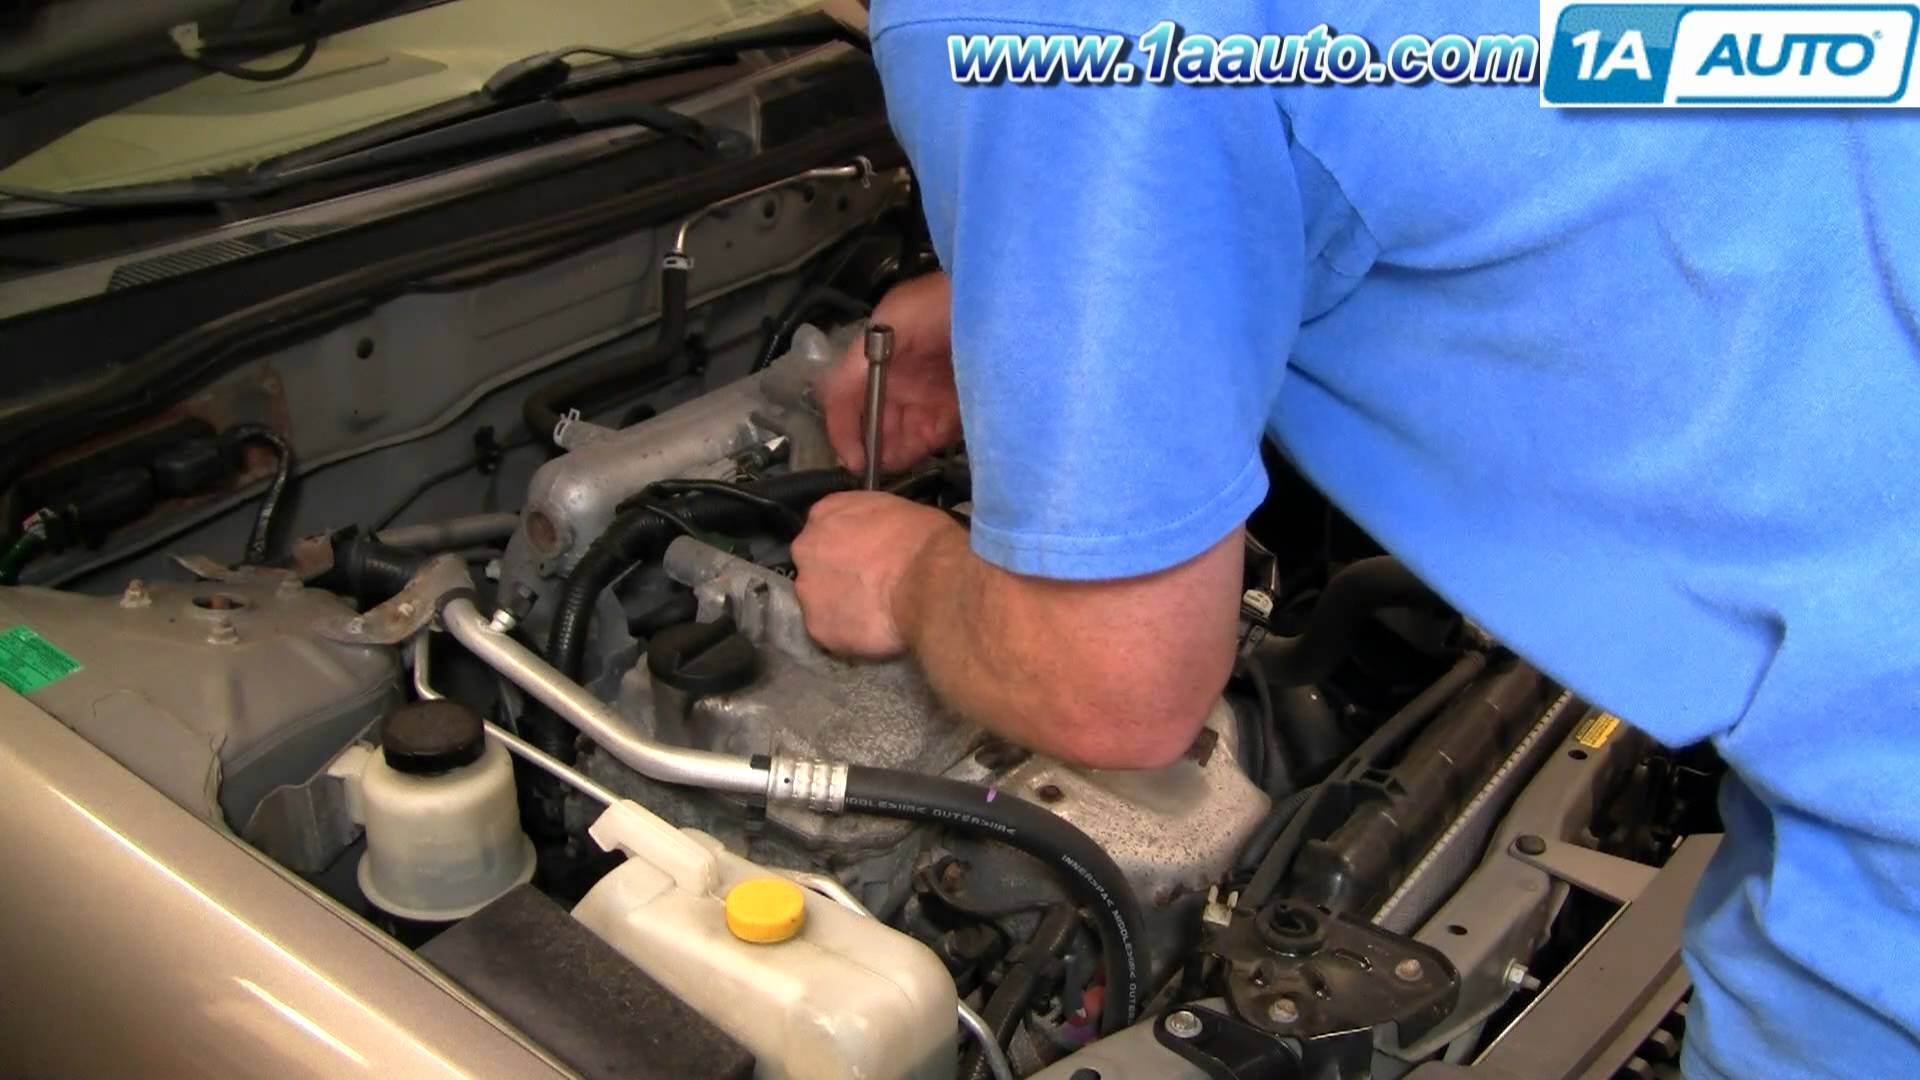 2008 Nissan Sentra Engine Diagram How to Install Replace Spark Plugs Nissan Sentra 04 06 1aauto Of 2008 Nissan Sentra Engine Diagram